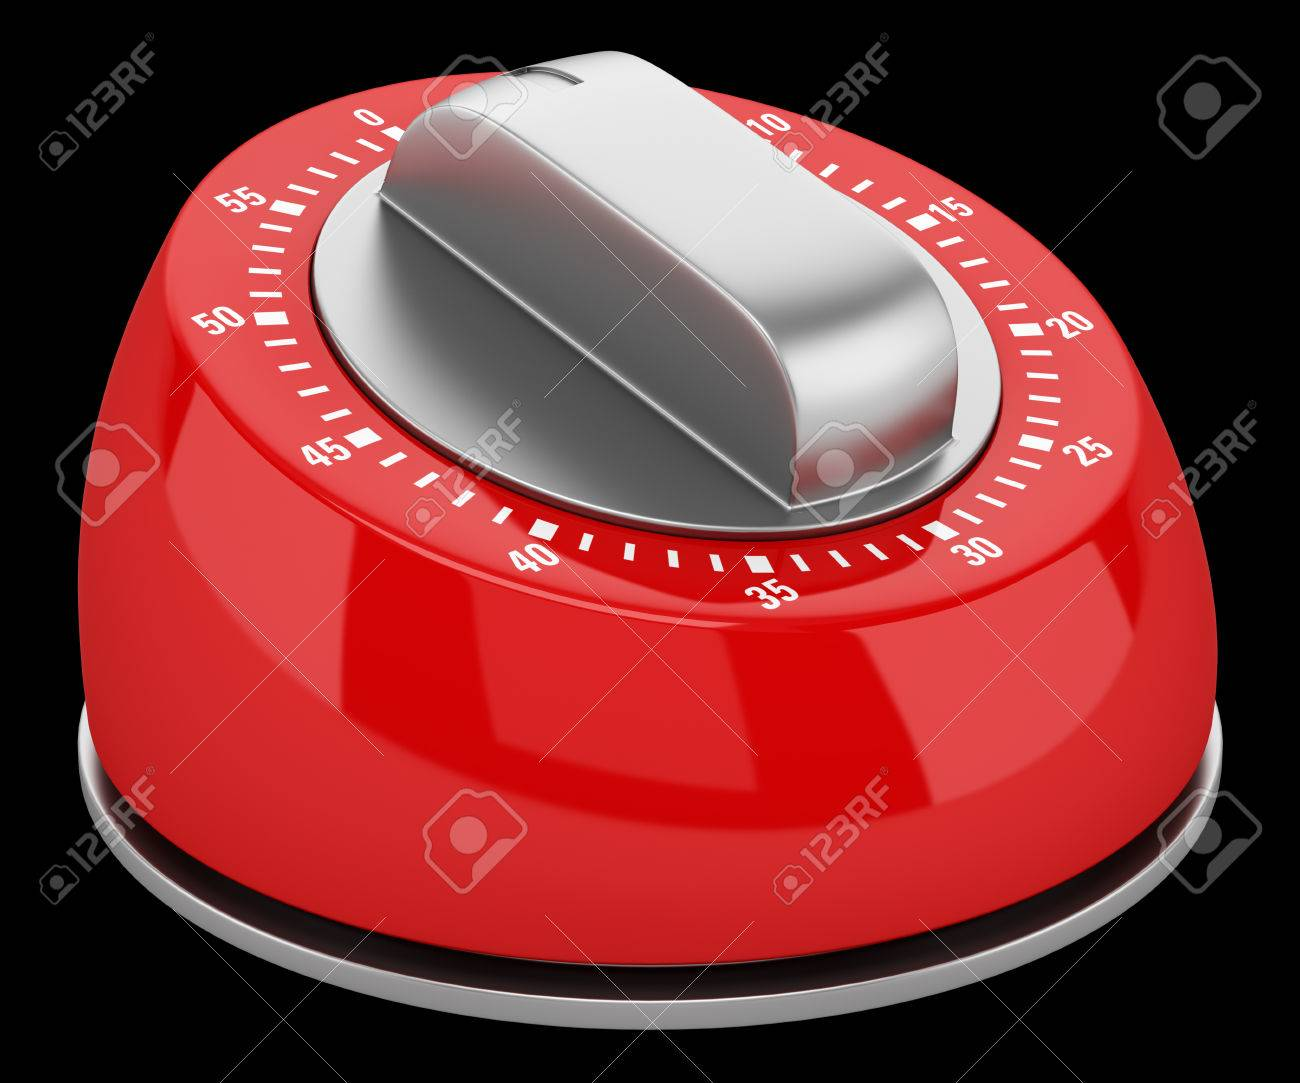 red modern kitchen timer isolated on black background stock photo  - stock photo  red modern kitchen timer isolated on black background